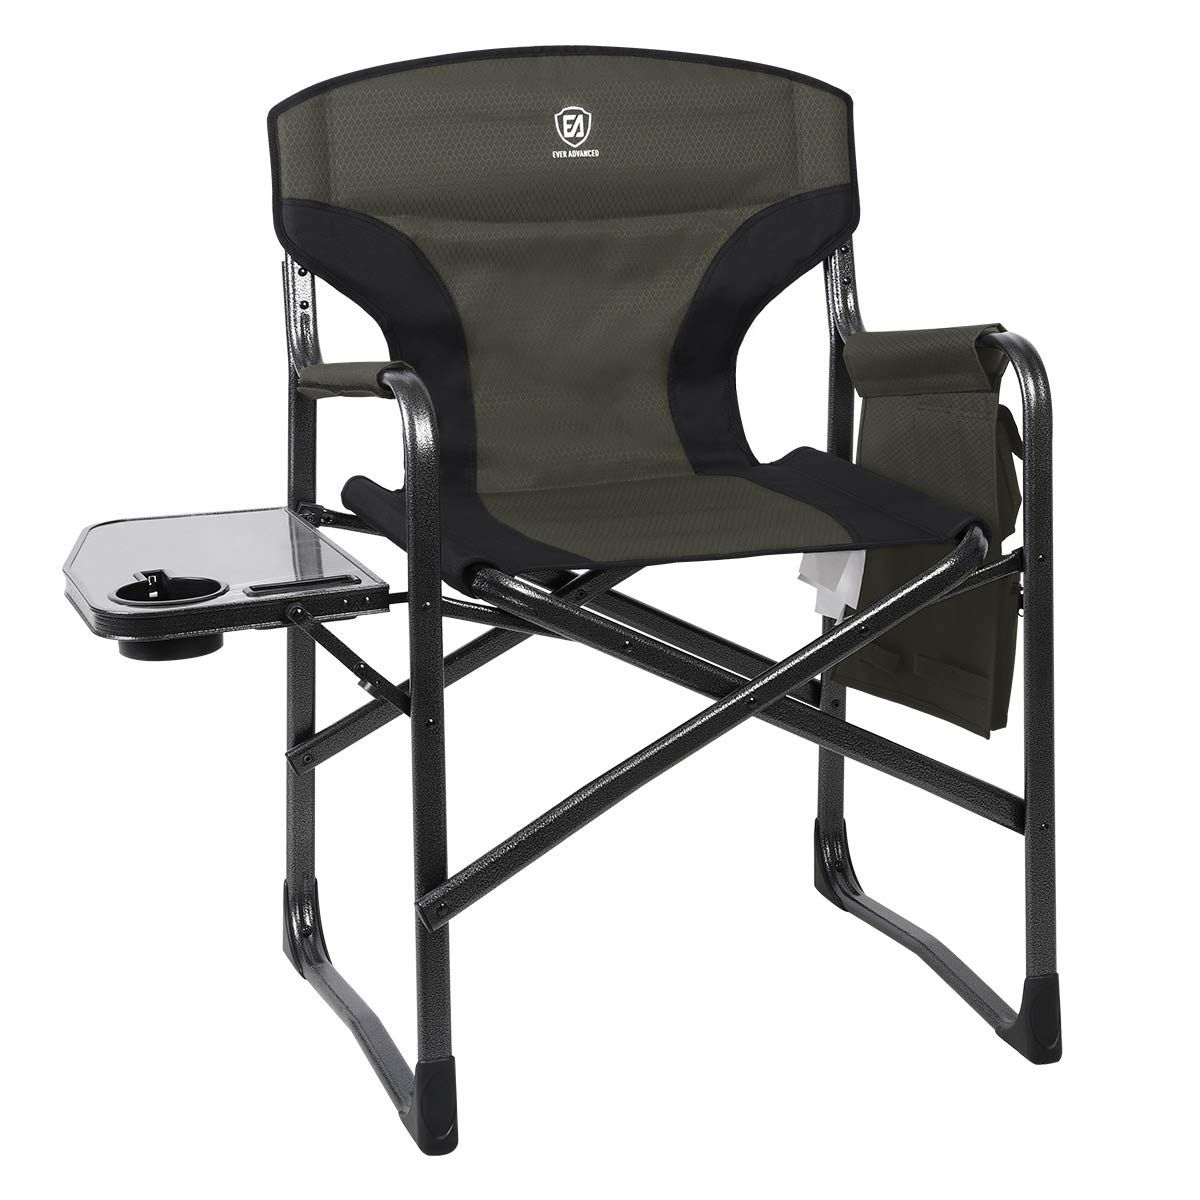 Ever Advanced Full Back Aluminum Folding Directors Chair With Side Table And Storage Pouch Heavy Duty 350lbs In 2020 Directors Chair Chair Outdoor Chairs